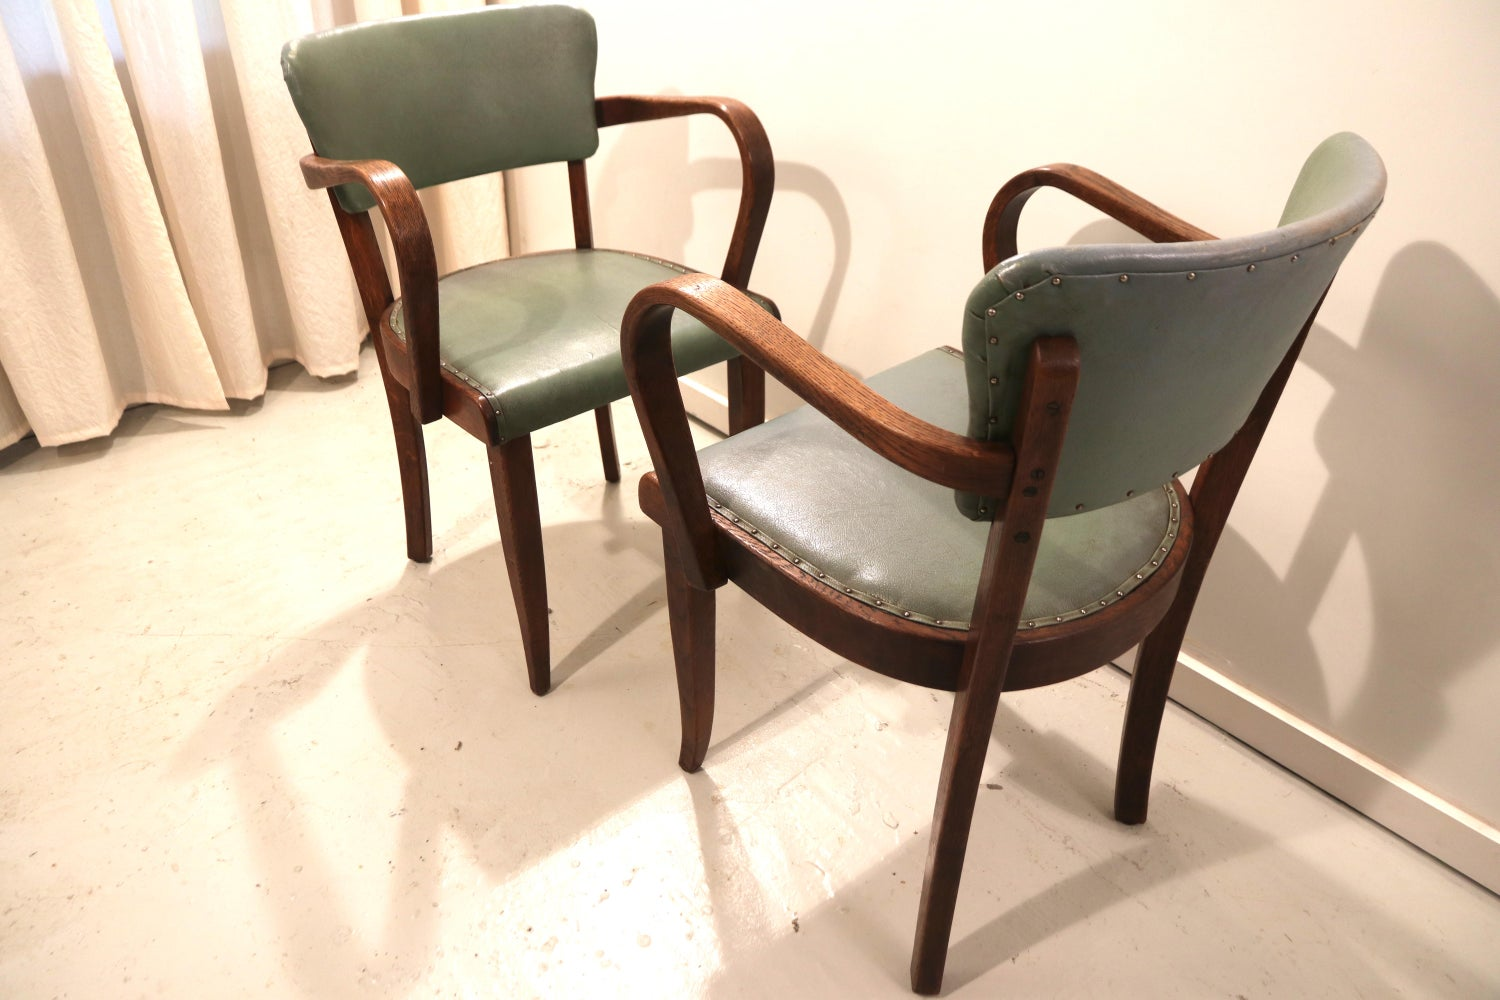 Design Stoelen Sale.Pair Of French Oak Side Chairs For Sale At 1stdibs